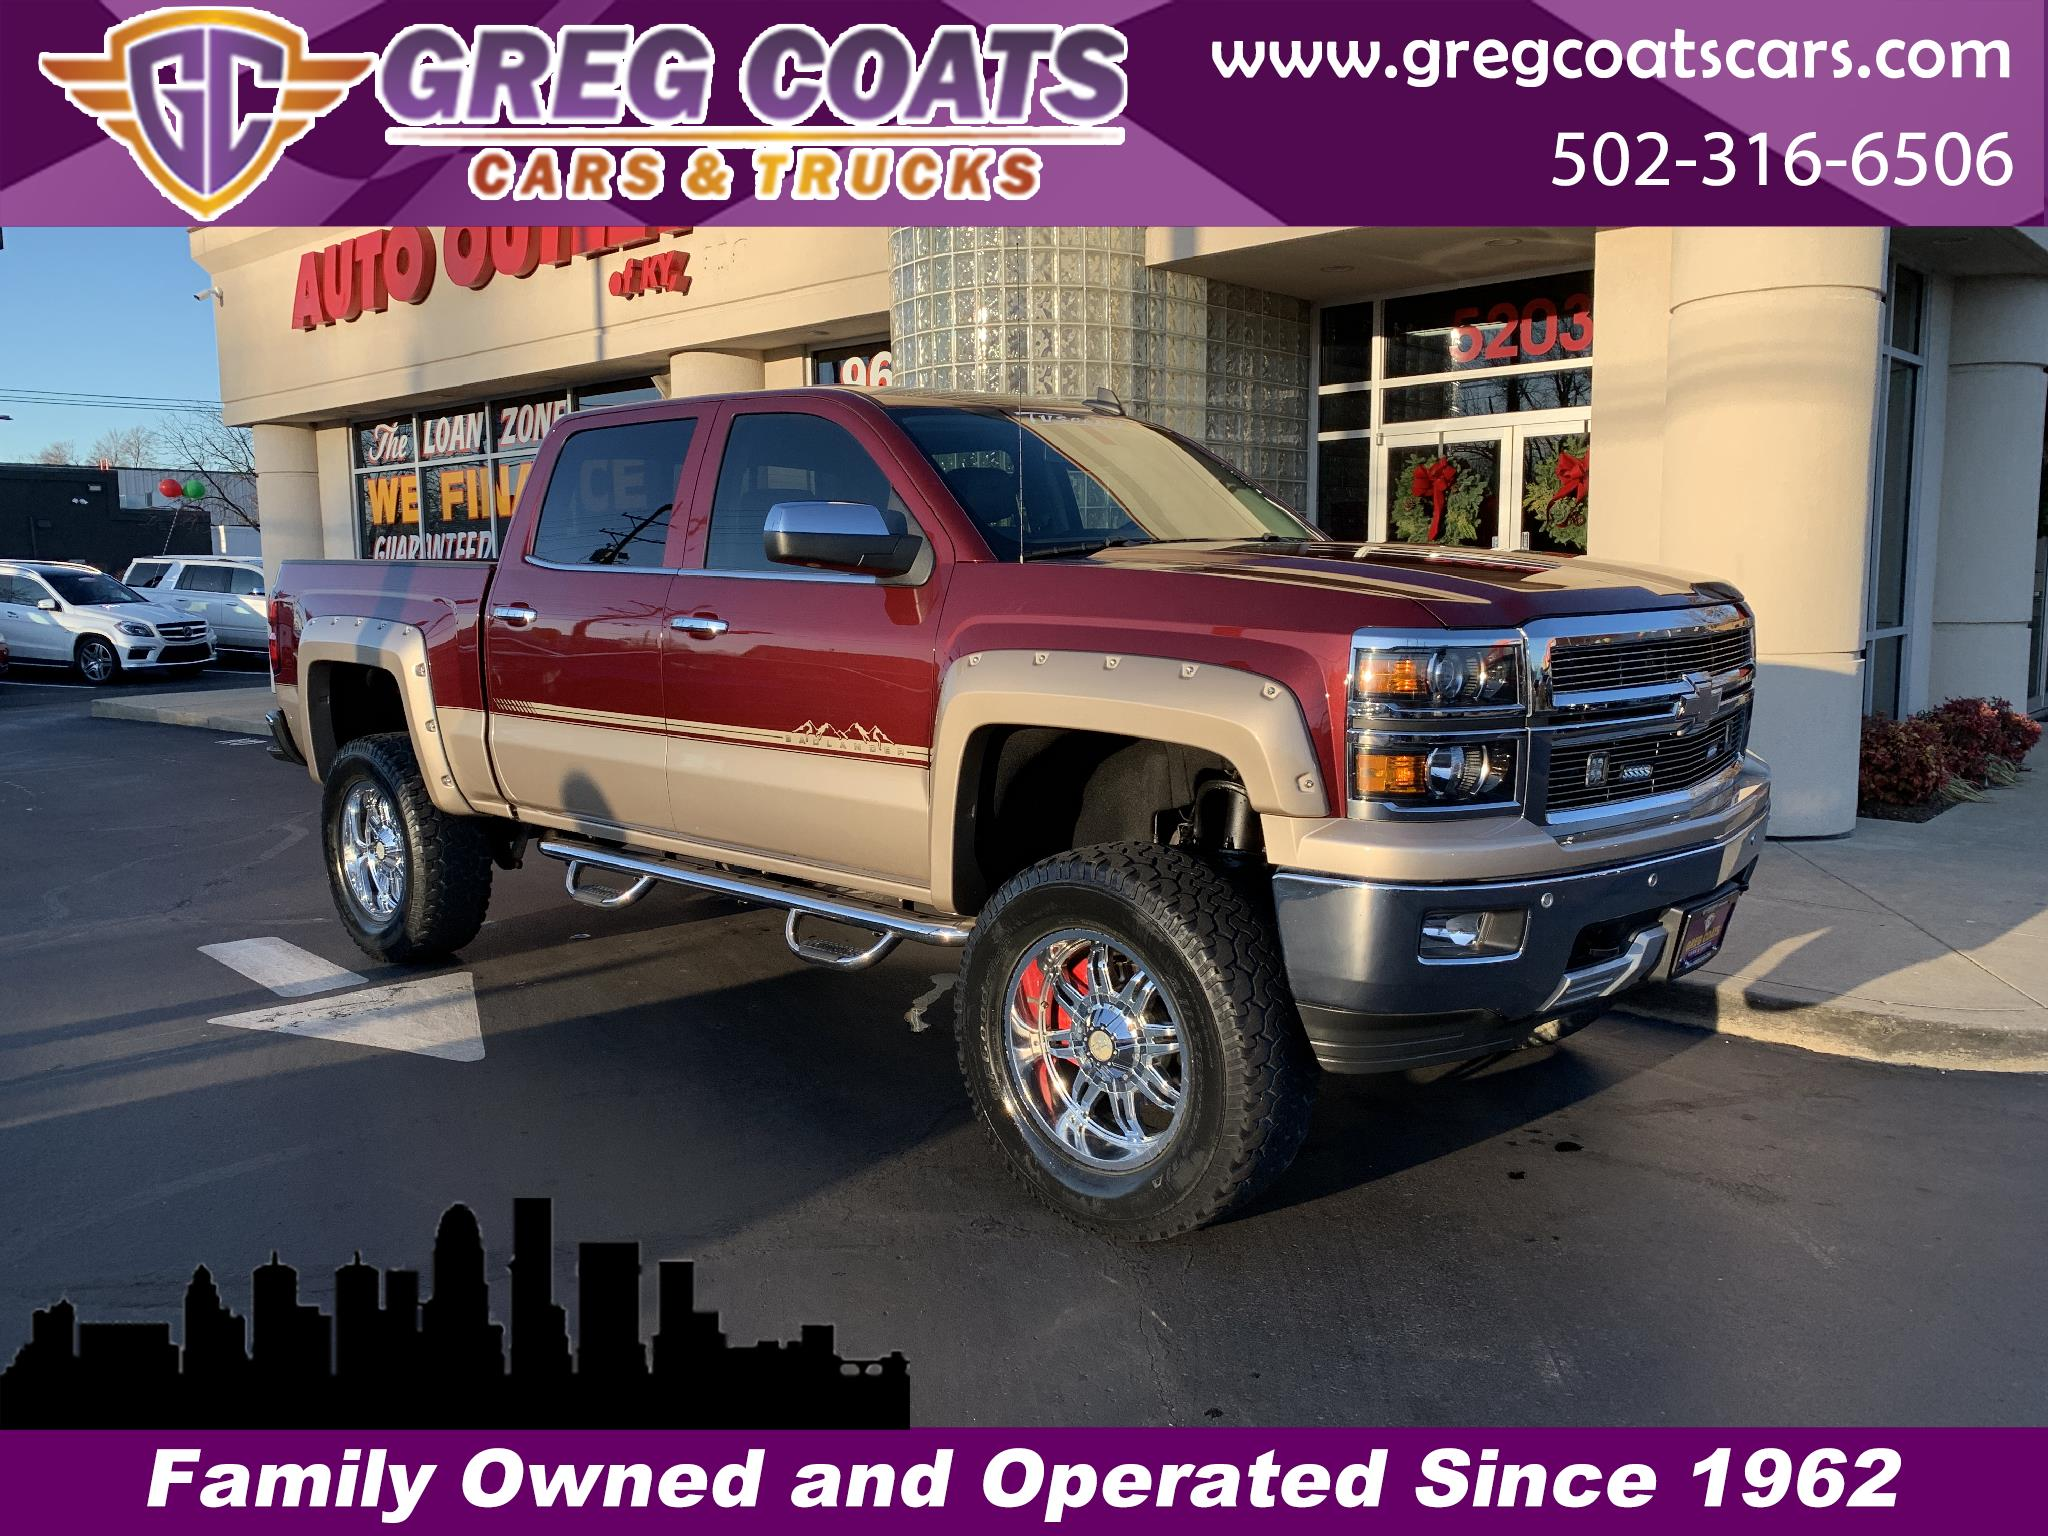 2015 Chevrolet Silverado 1500 Tuscony Badlander Conversion